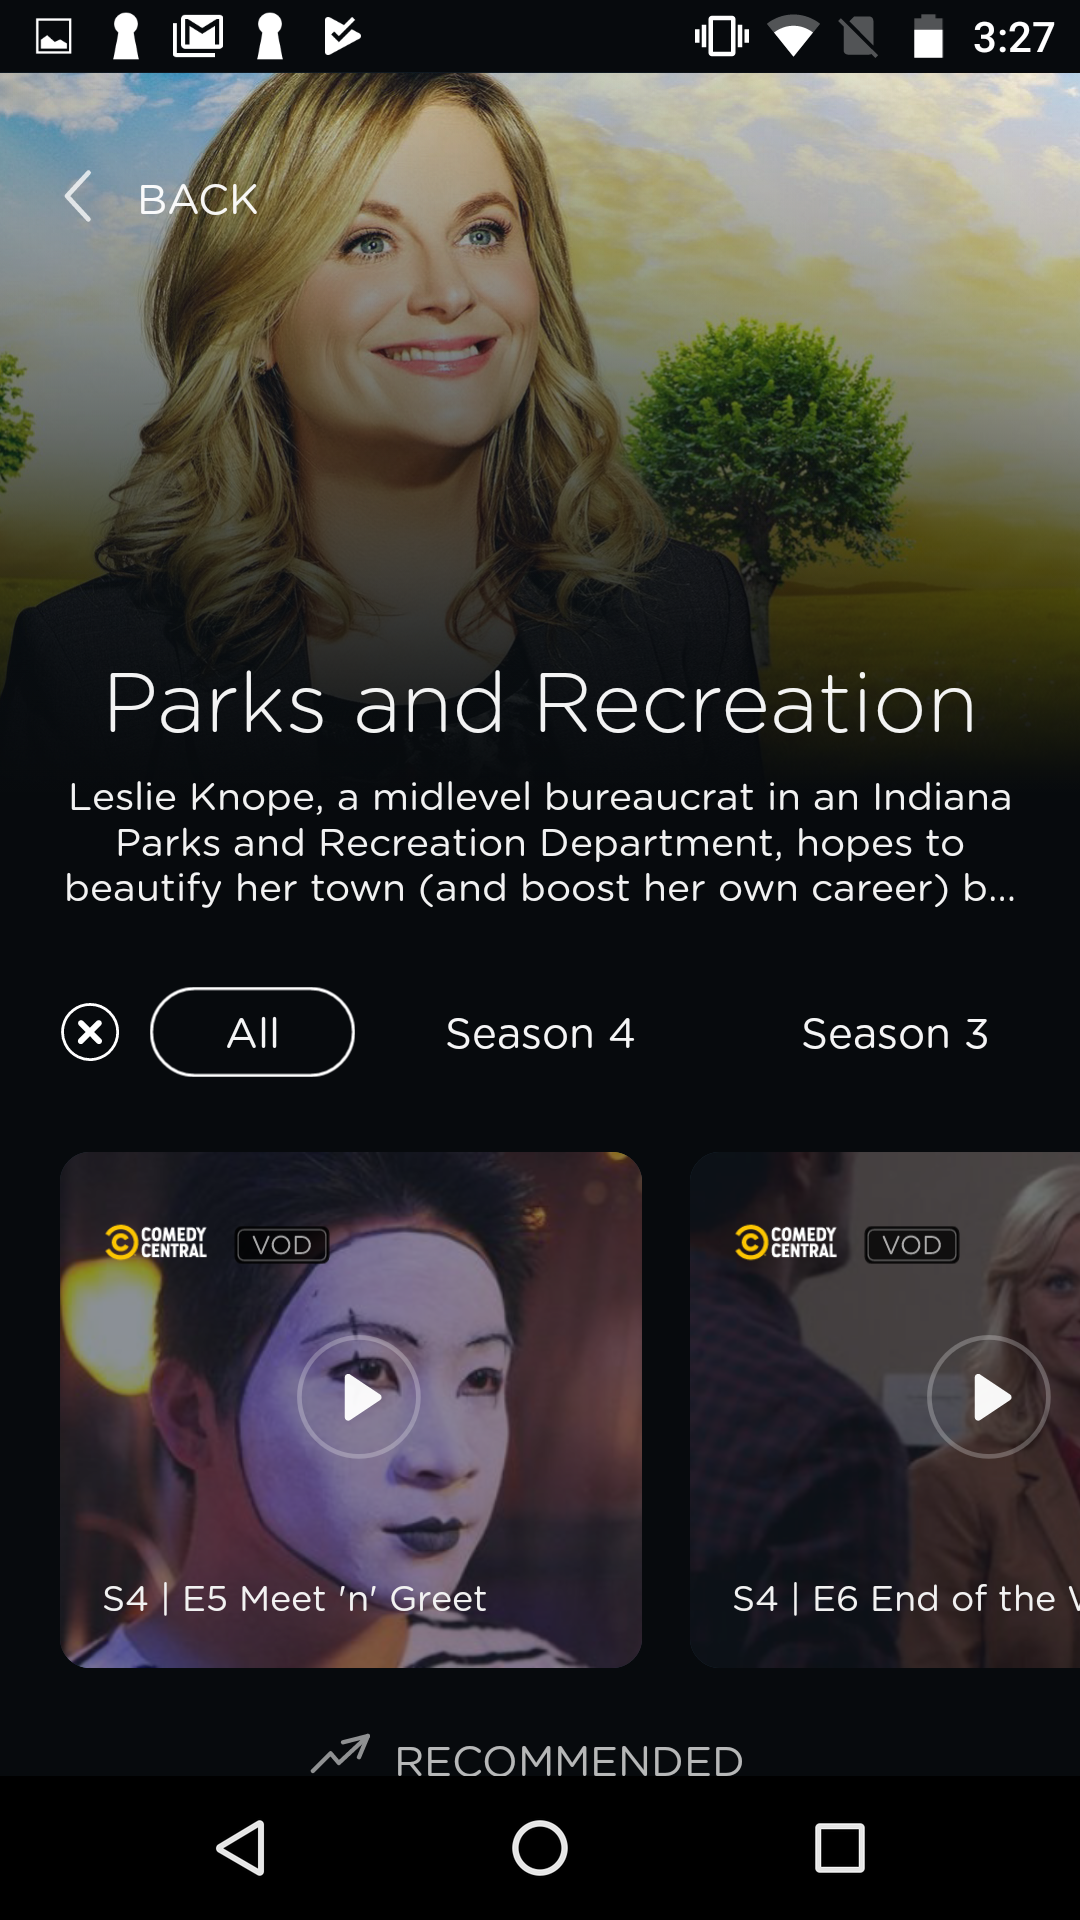 TV streaming service Philo expands to Android phones and tablets